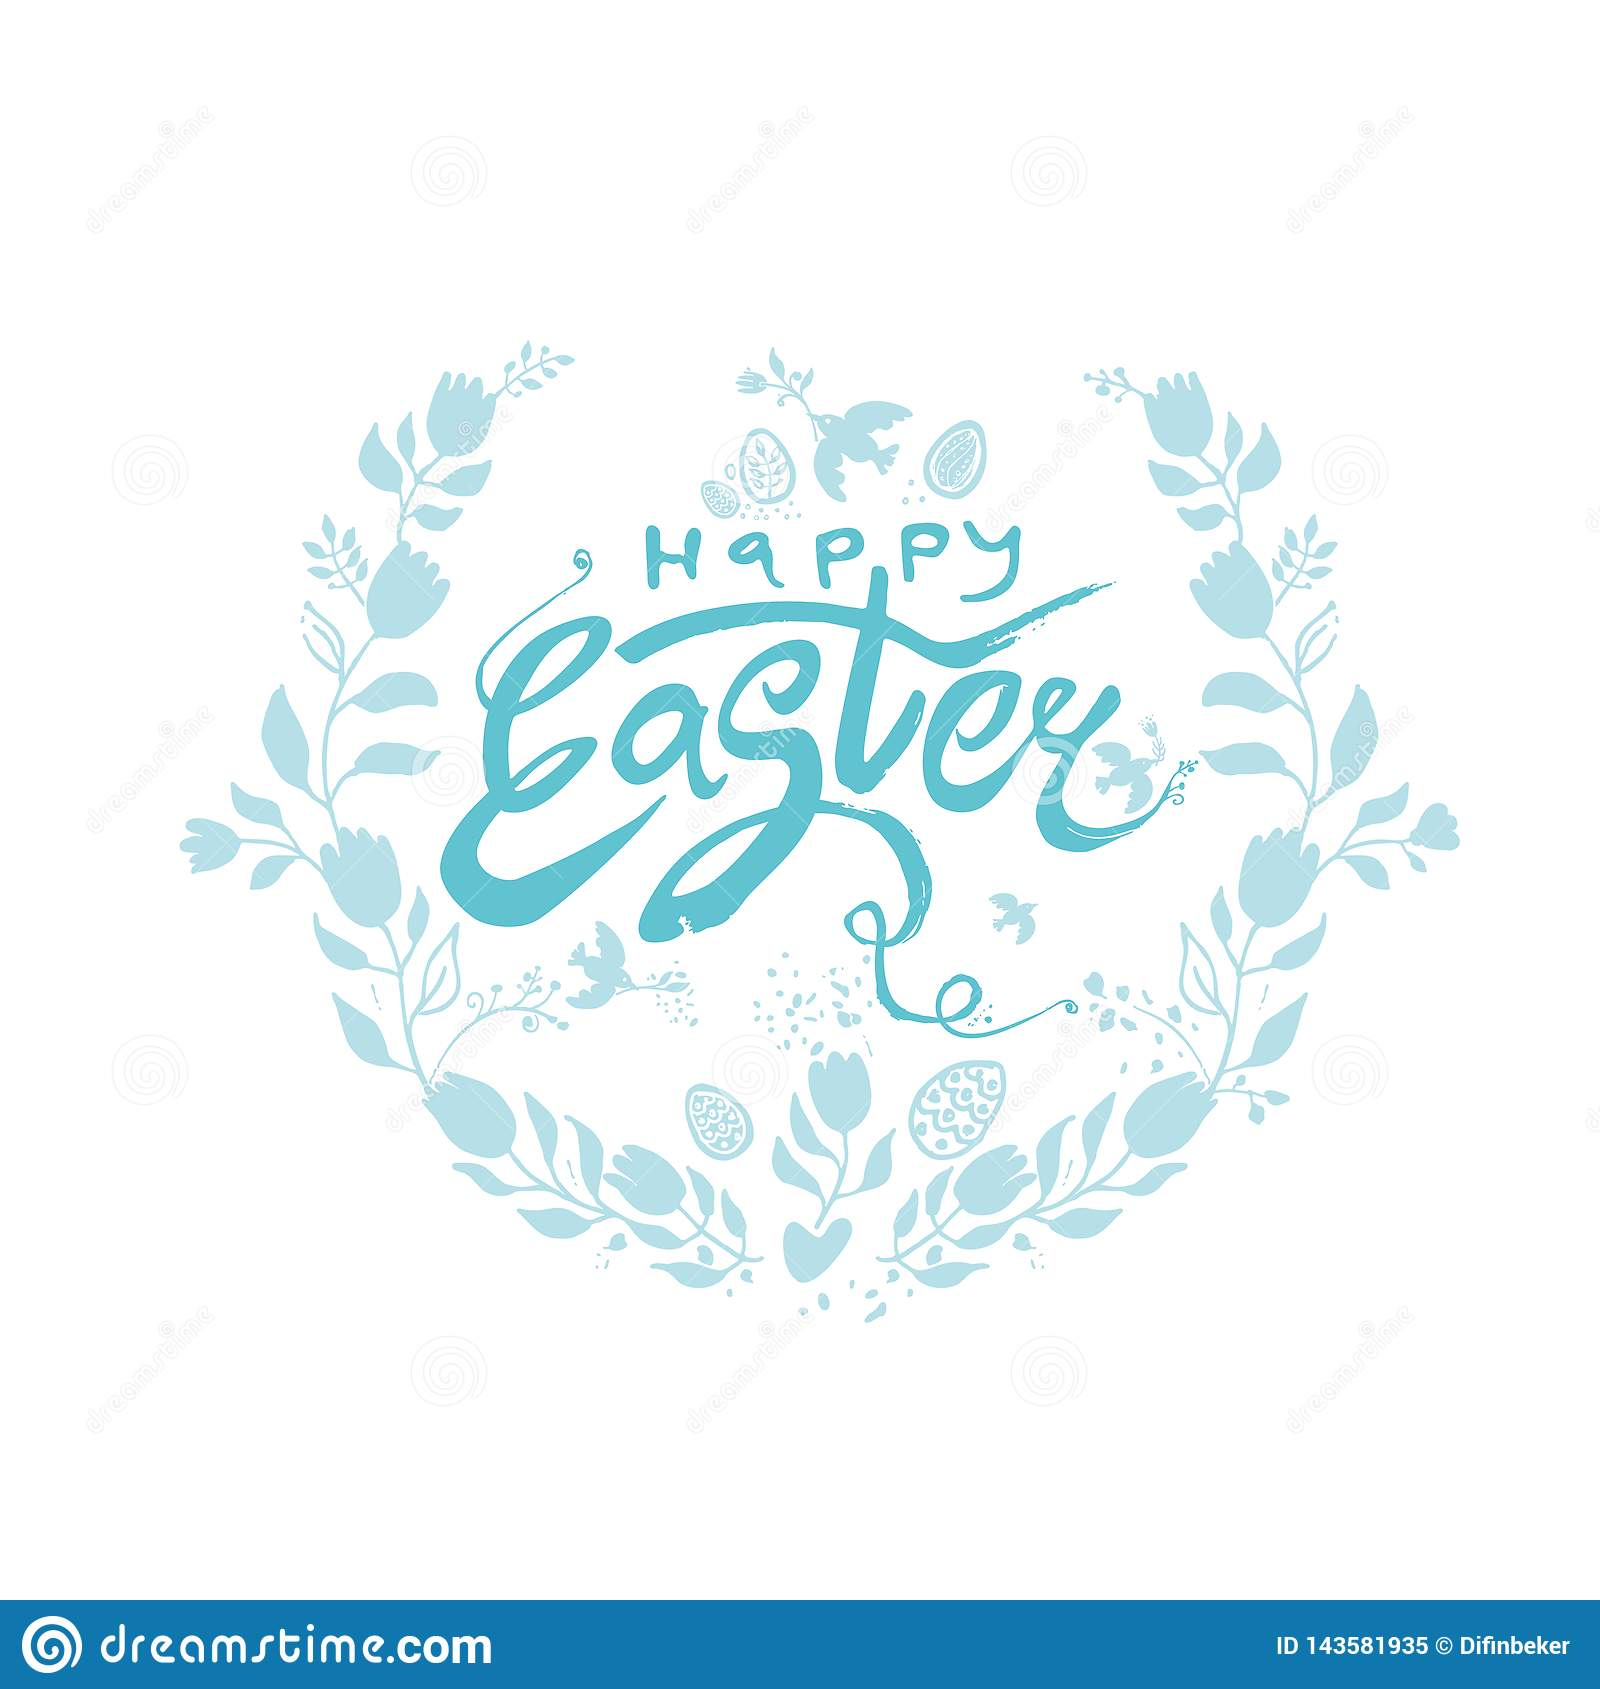 Happy Easter. Vector turquoise logo sketch hand drawn Easter eggs and flowers wreath. Modern calligraphy.